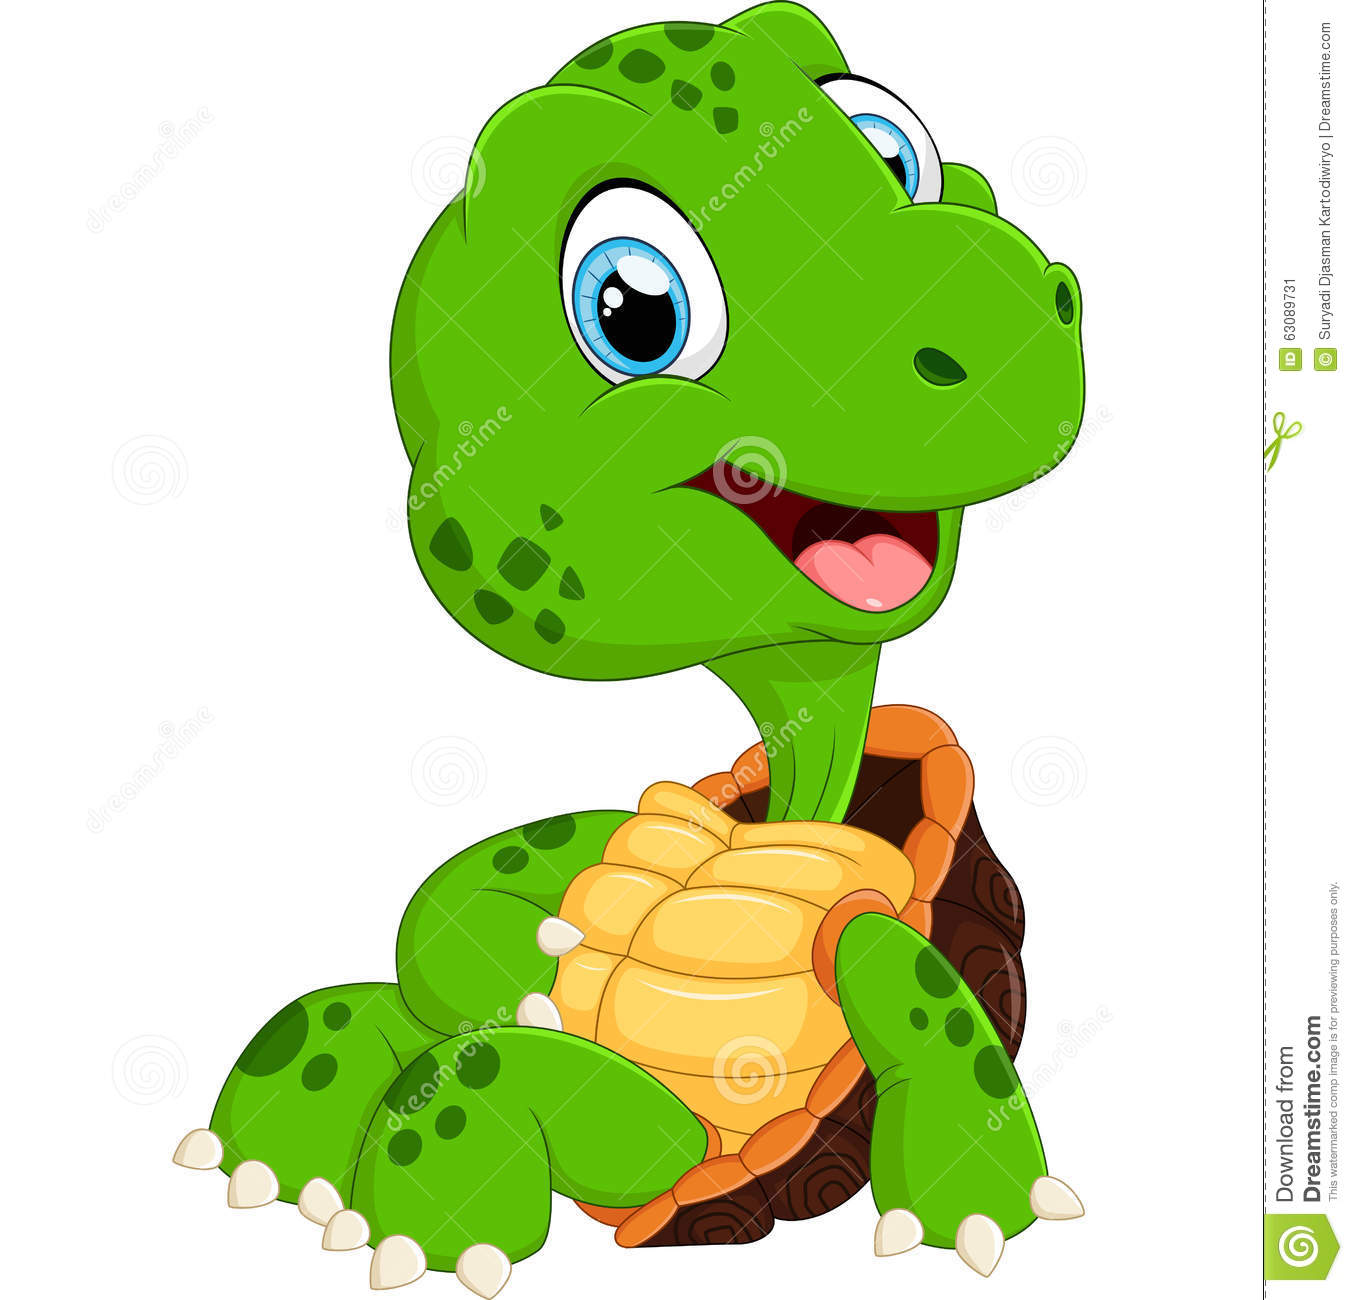 Download Pose Mignonne De Bande Dessinée De Tortue Illustration de Vecteur - Illustration du adorable, heureux: 63089731